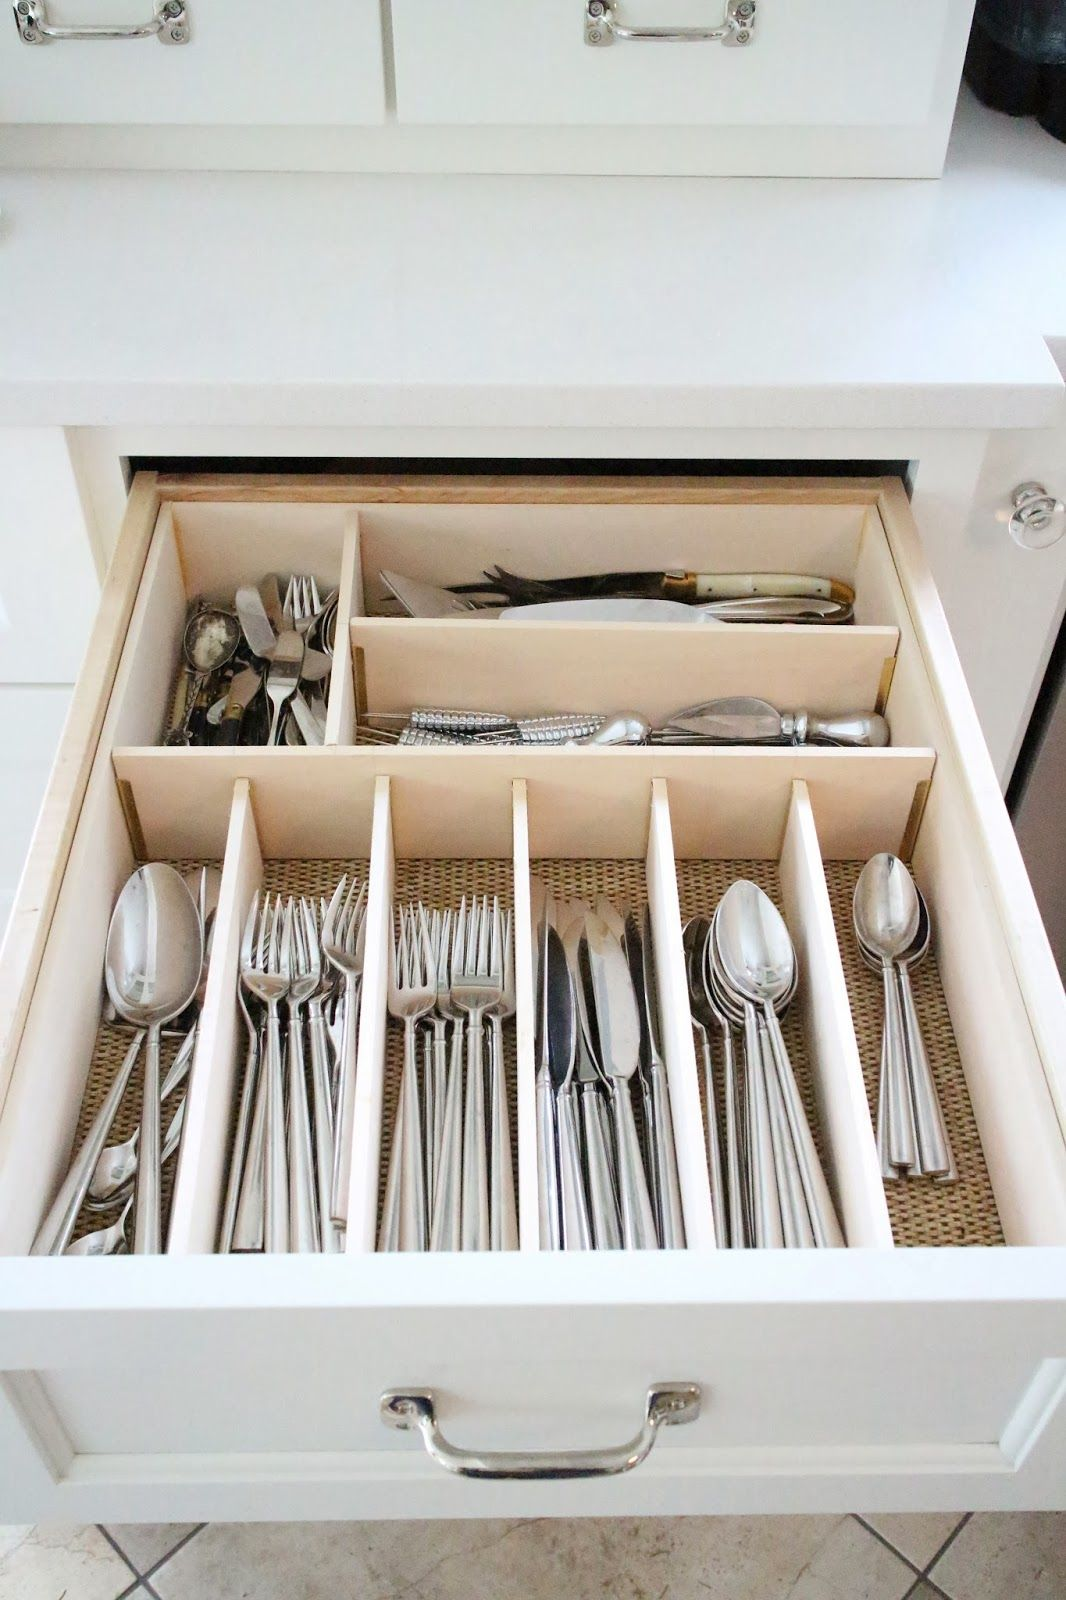 d organizer drawer h enchanting caddy ikea organization x wallpaper comfortable w counter storage kitchen target silverware bamboo her at calm modern tiered large silverw utensil to flatware organizers expandable